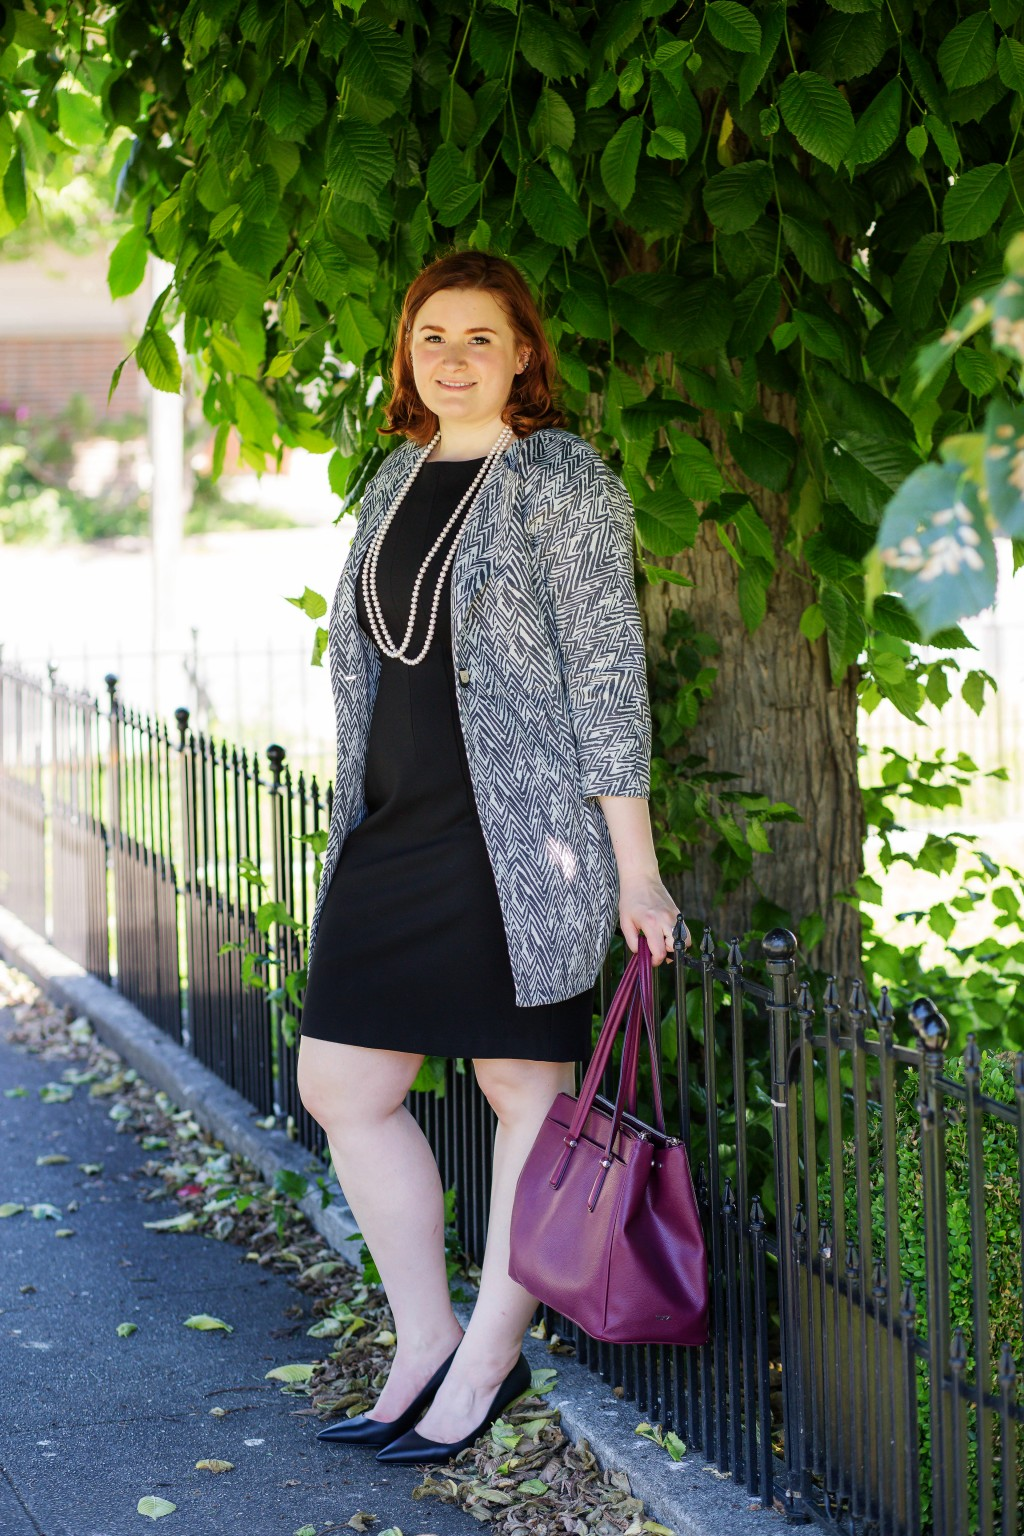 1-kate-retherford-of-all-things-kate-professional-business-look